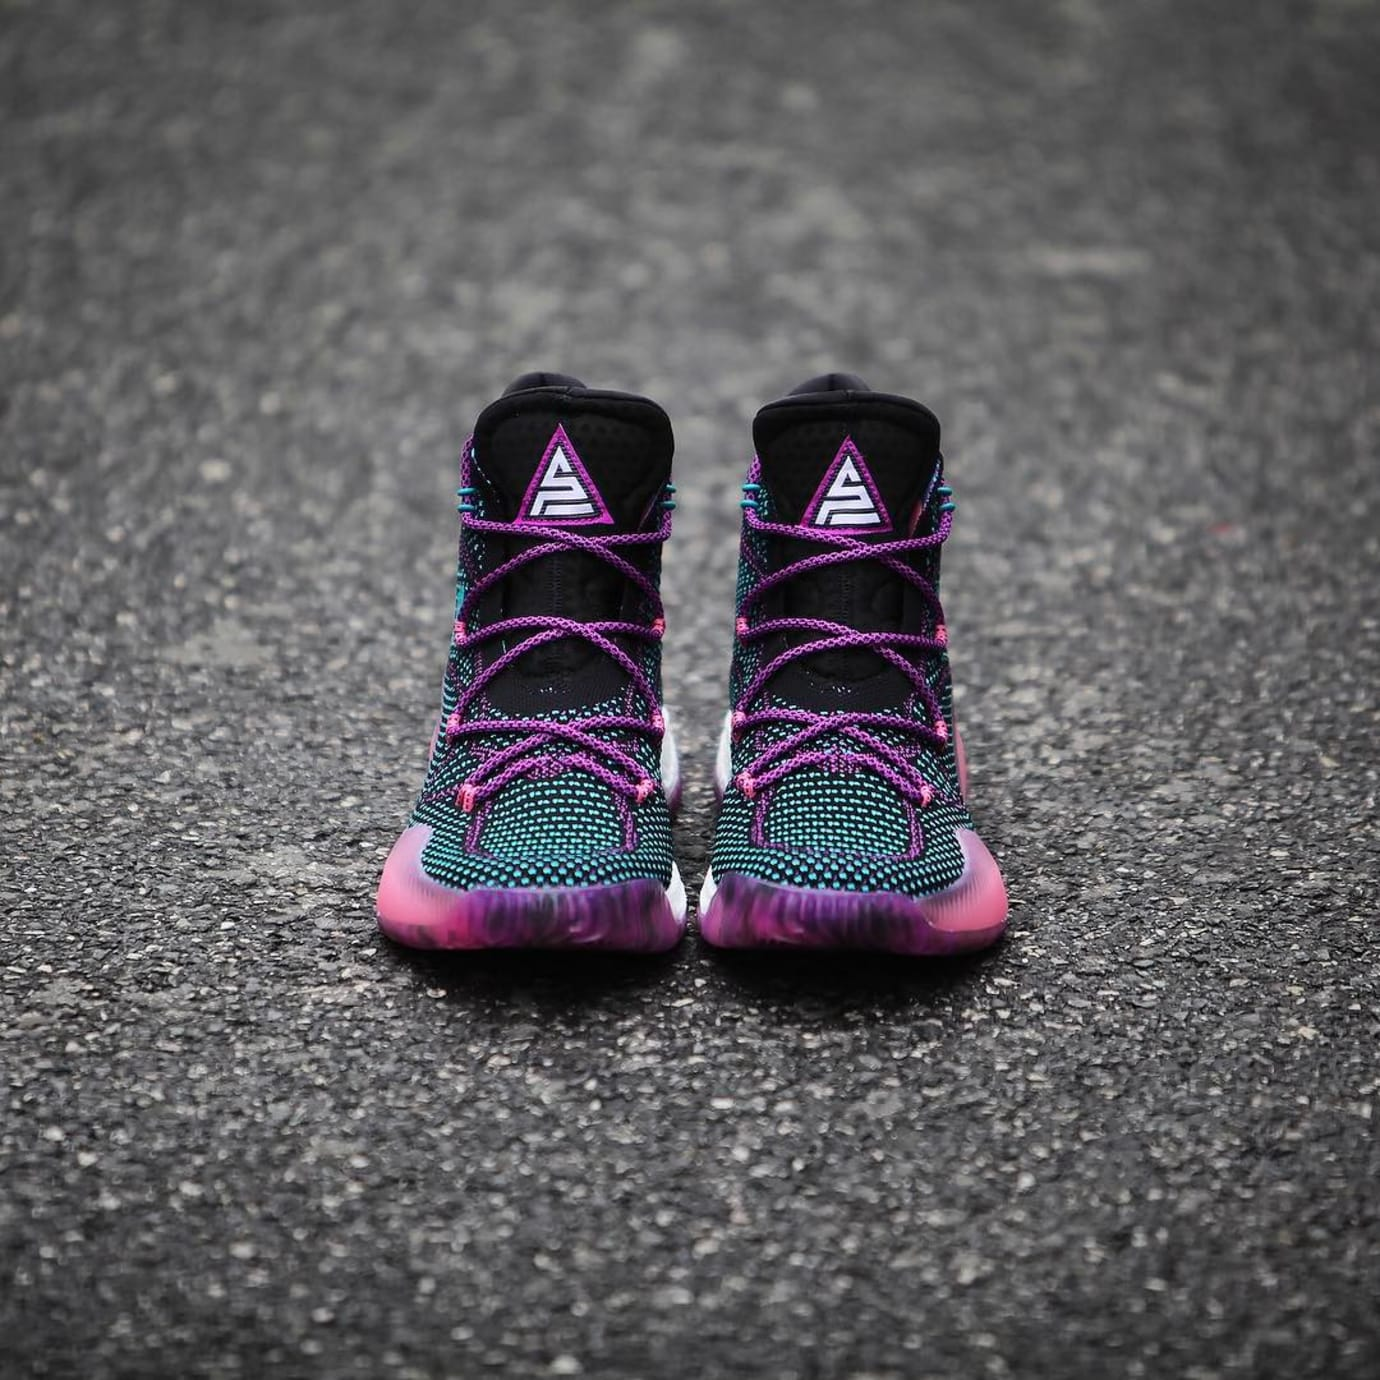 brand new ec9f9 652c8 ... Swaggy P Adidas Crazy Explosive Black Pink PE (6)